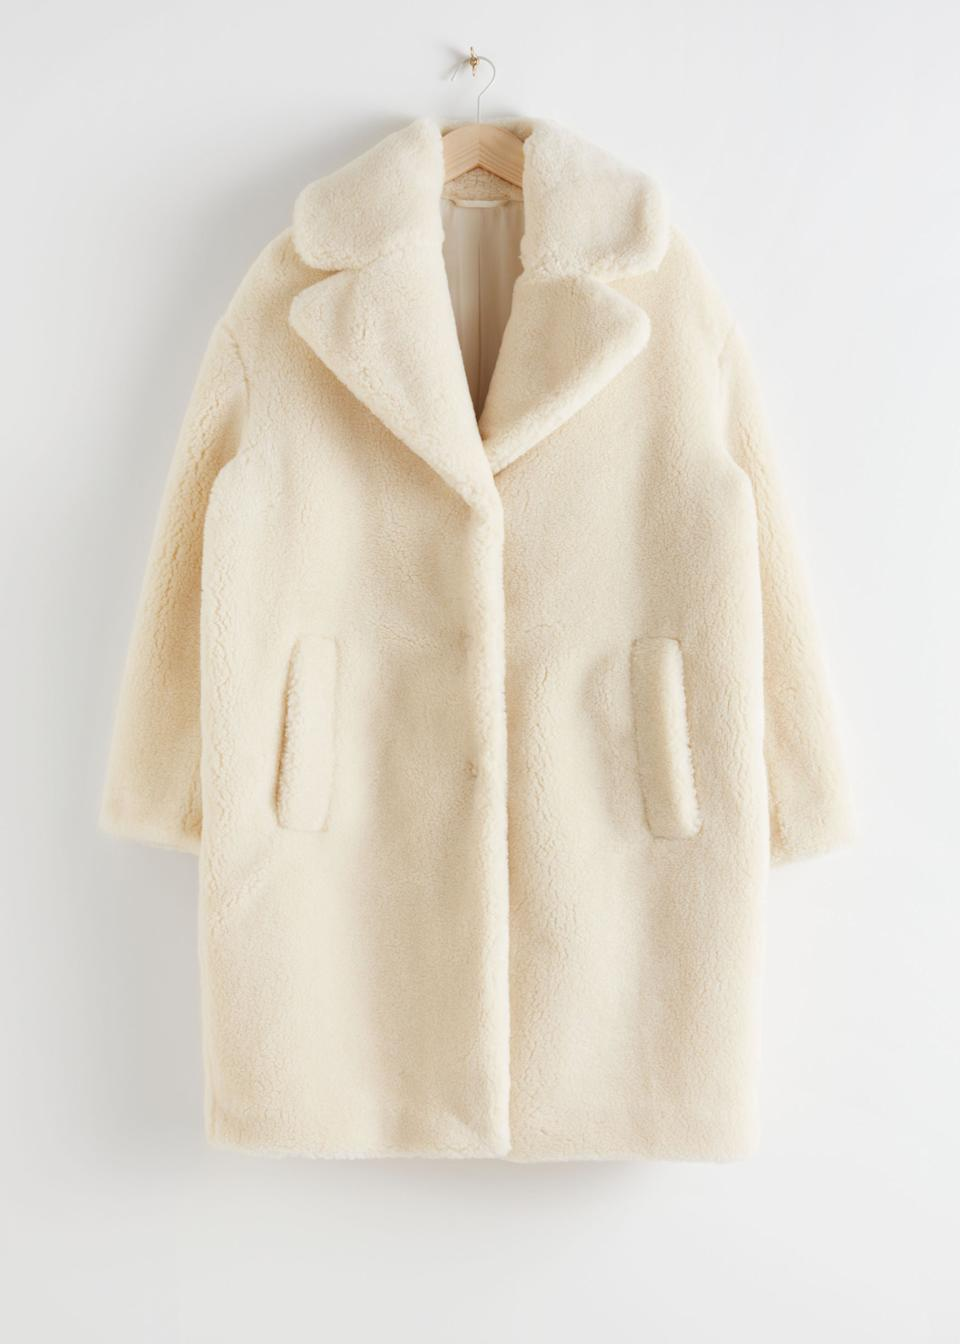 "<br><br><strong>& Other Stories</strong> Oversized Faux Shearling Coat, $, available at <a href=""https://go.skimresources.com/?id=30283X879131&url=https%3A%2F%2Fwww.stories.com%2Fen_usd%2Fclothing%2Fjackets-coats%2Ffauxfur%2Fproduct.oversized-faux-shearling-coat-yellow.0657922004.html"" rel=""nofollow noopener"" target=""_blank"" data-ylk=""slk:& Other Stories"" class=""link rapid-noclick-resp"">& Other Stories</a>"